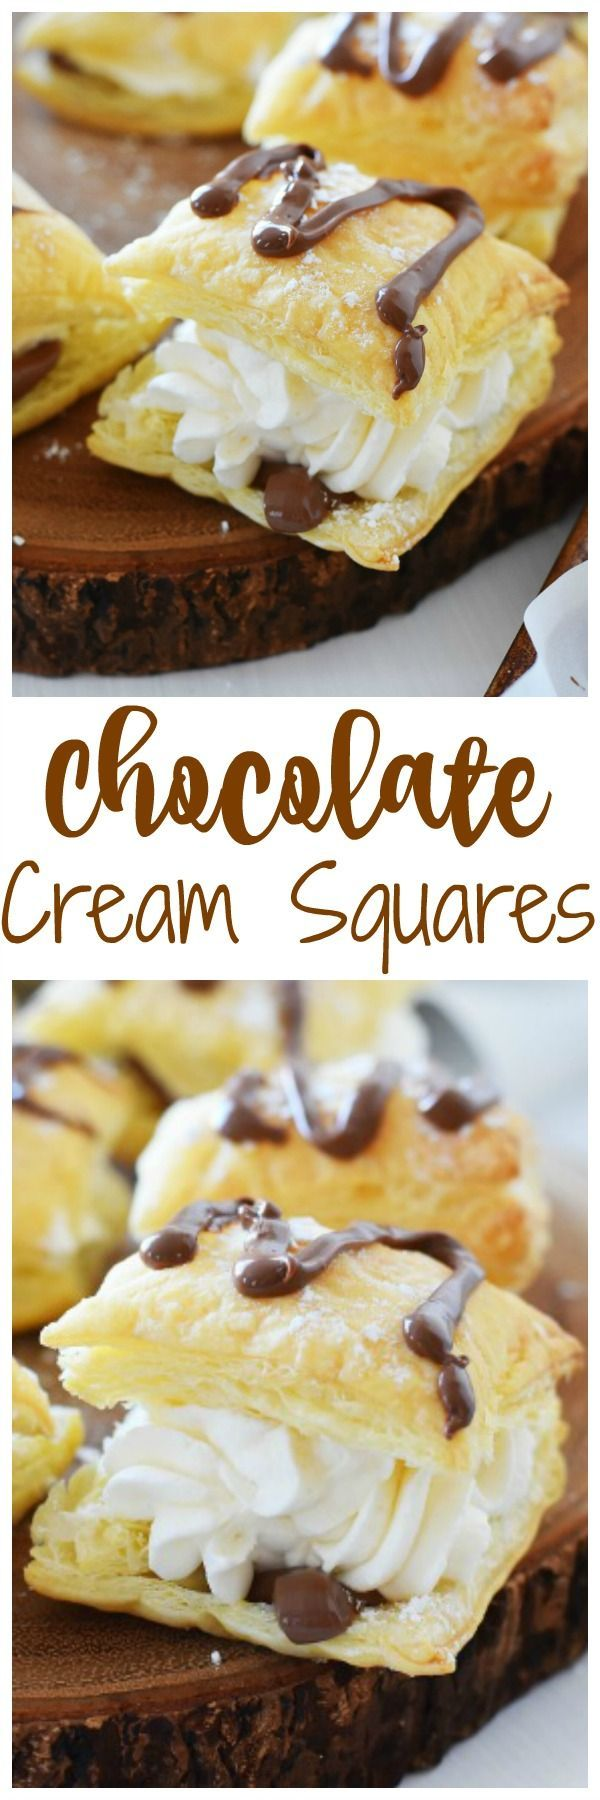 Chocolate Filled Real Cream Squares